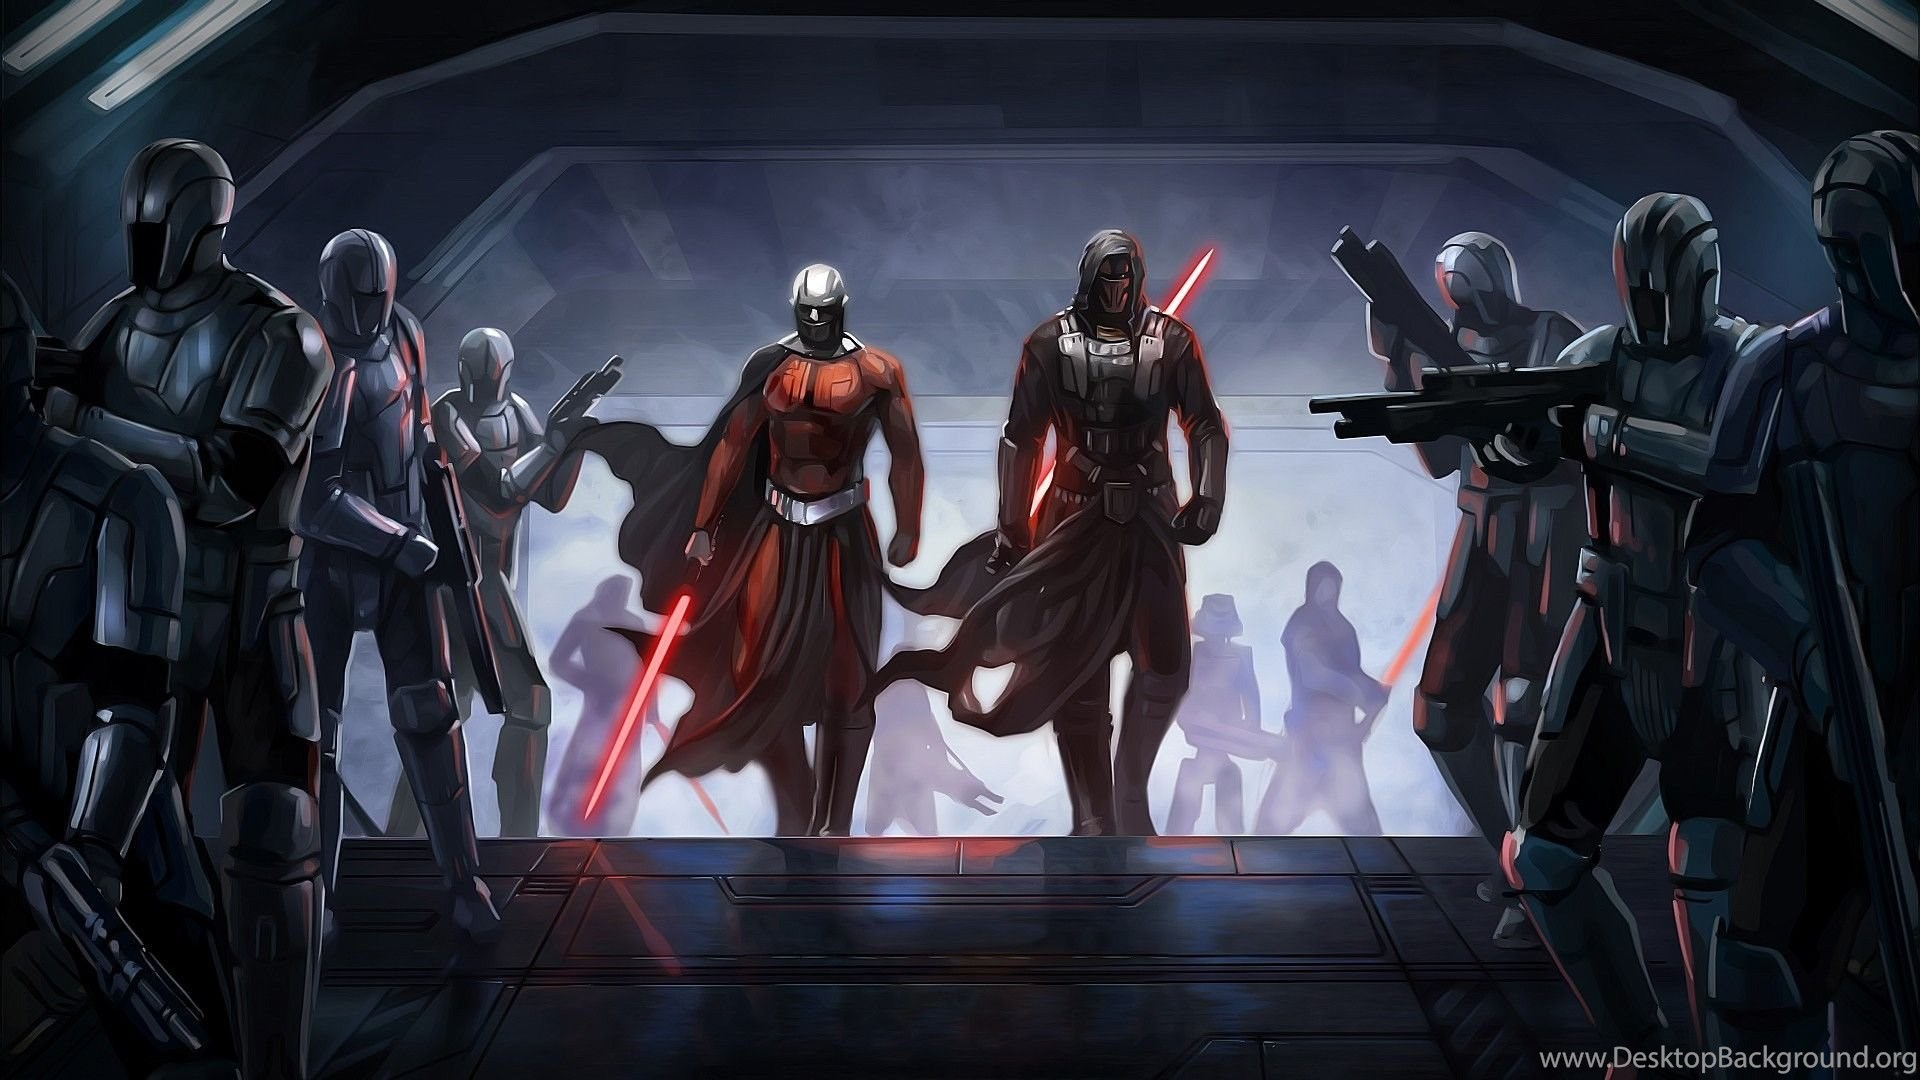 Download Wallpapers 1920x1080 Star Wars The Old Republic Guard Desktop Background